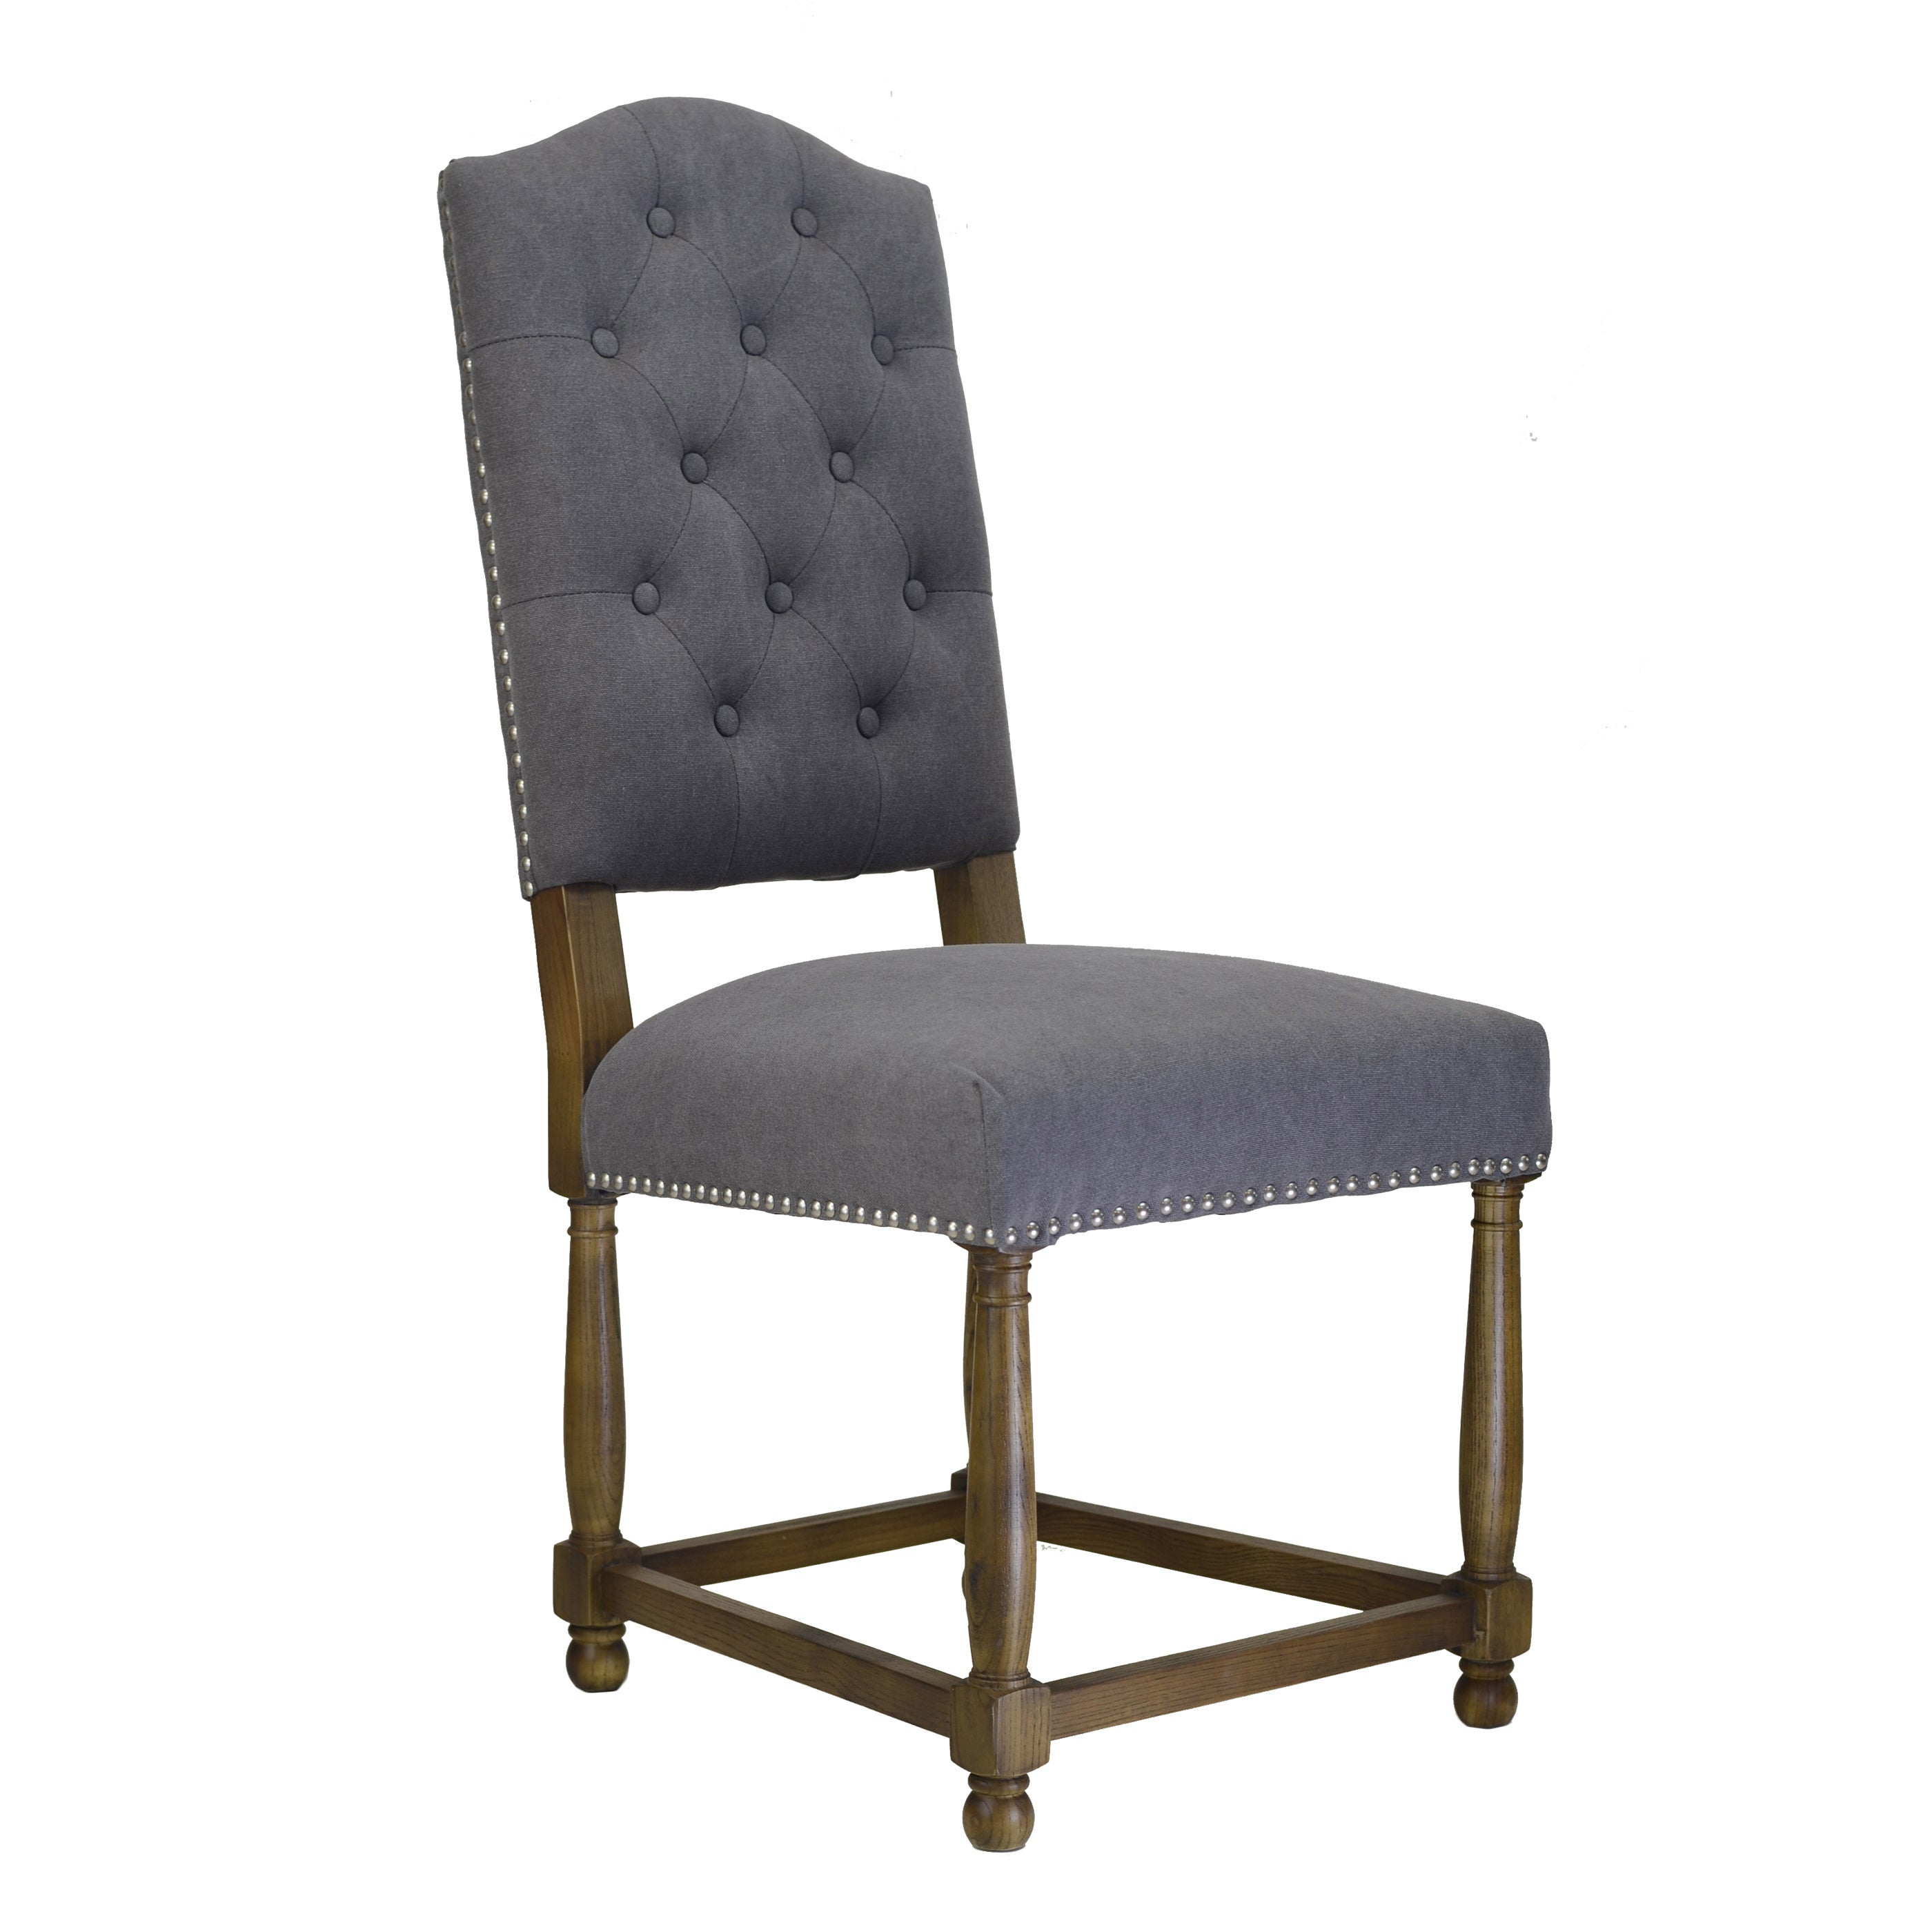 Empire Dining Chair in Frost Grey (Tufted Side Chair with...